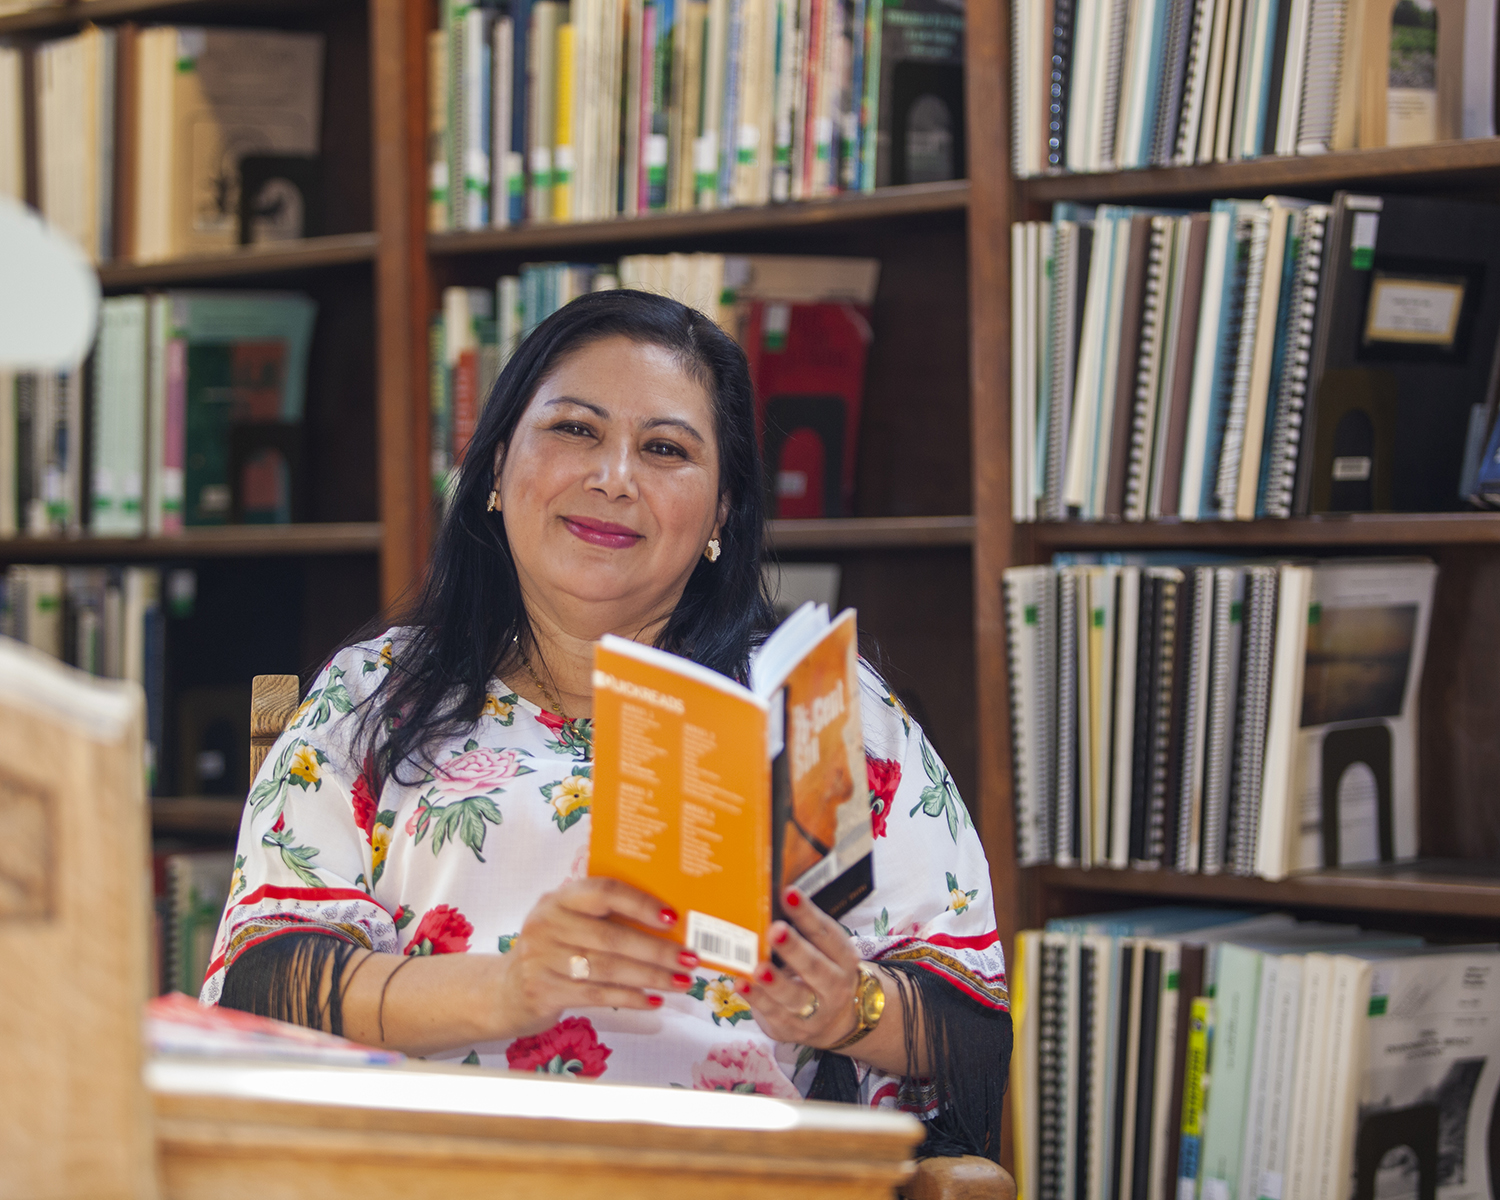 Blanca Granados de Cruz facing the camera while sitting at a desk with a book in her hands in the Wilson Library Reading Room